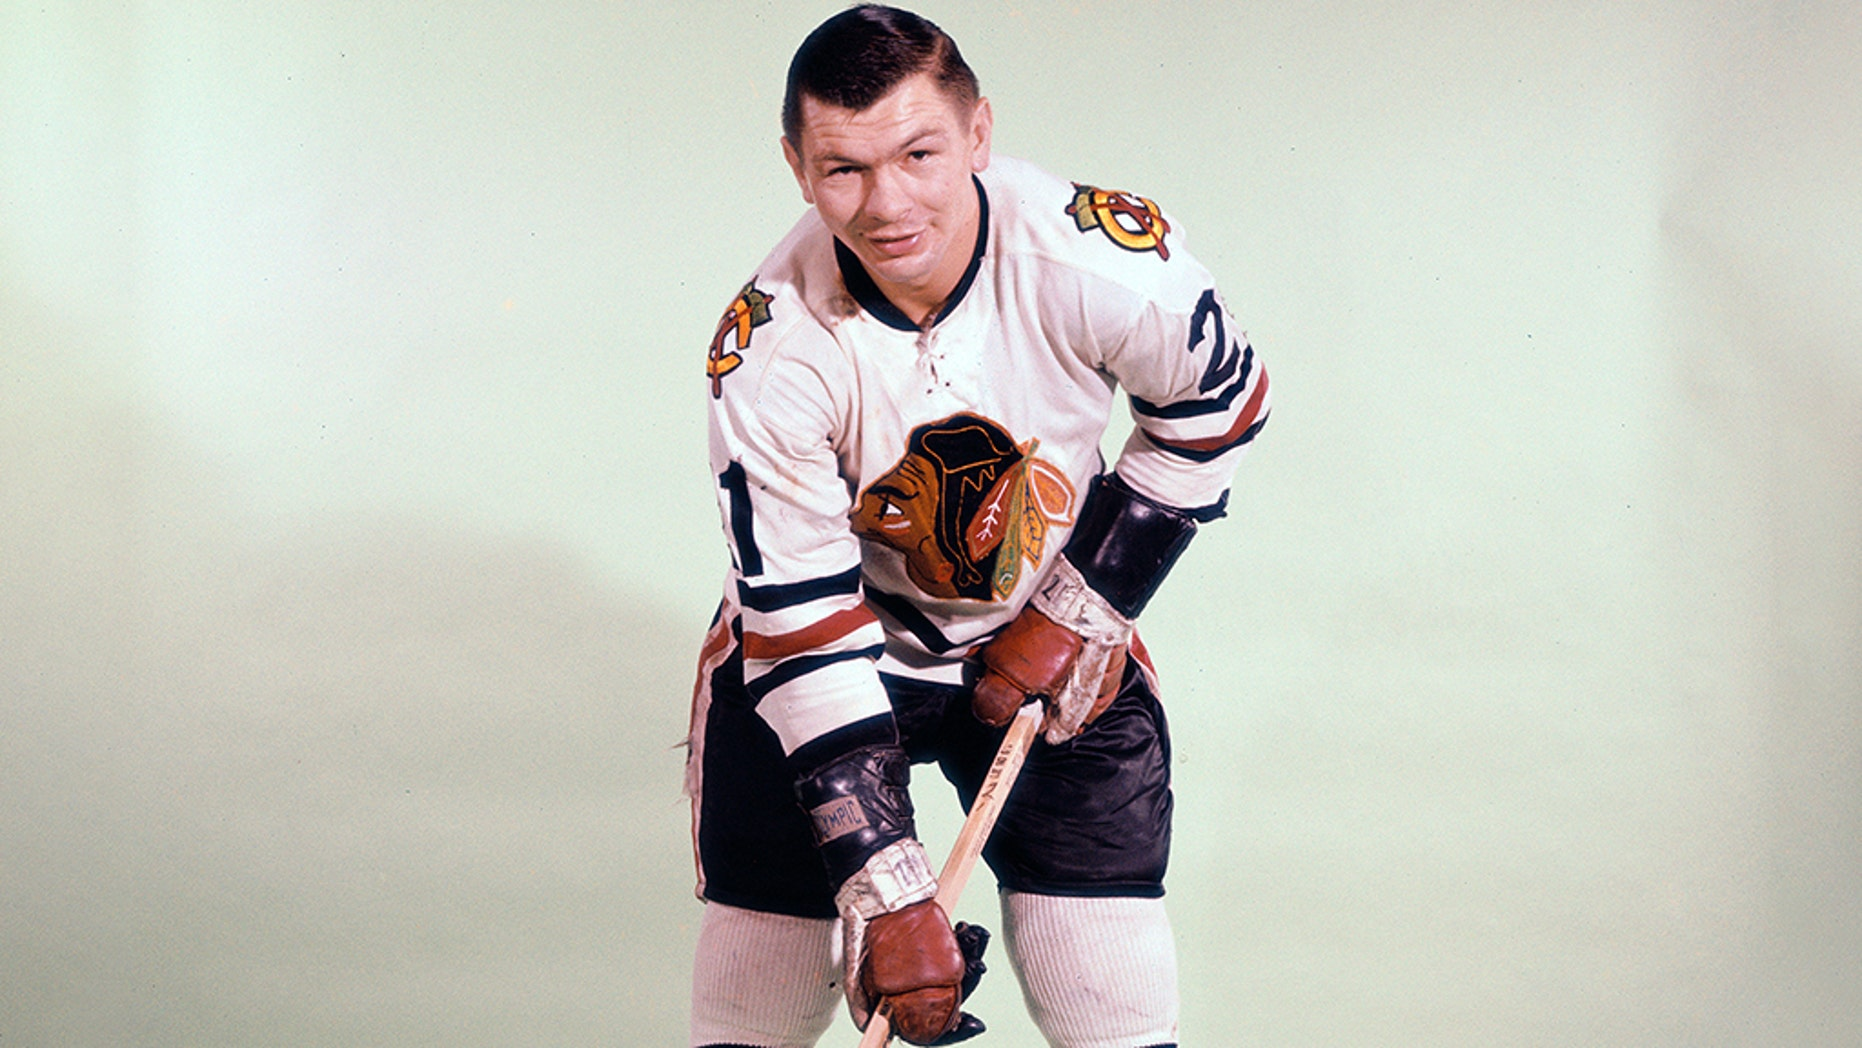 Stan Mikita played for the Chicago Blackhawks for all 22 years of his National Hockey League career.